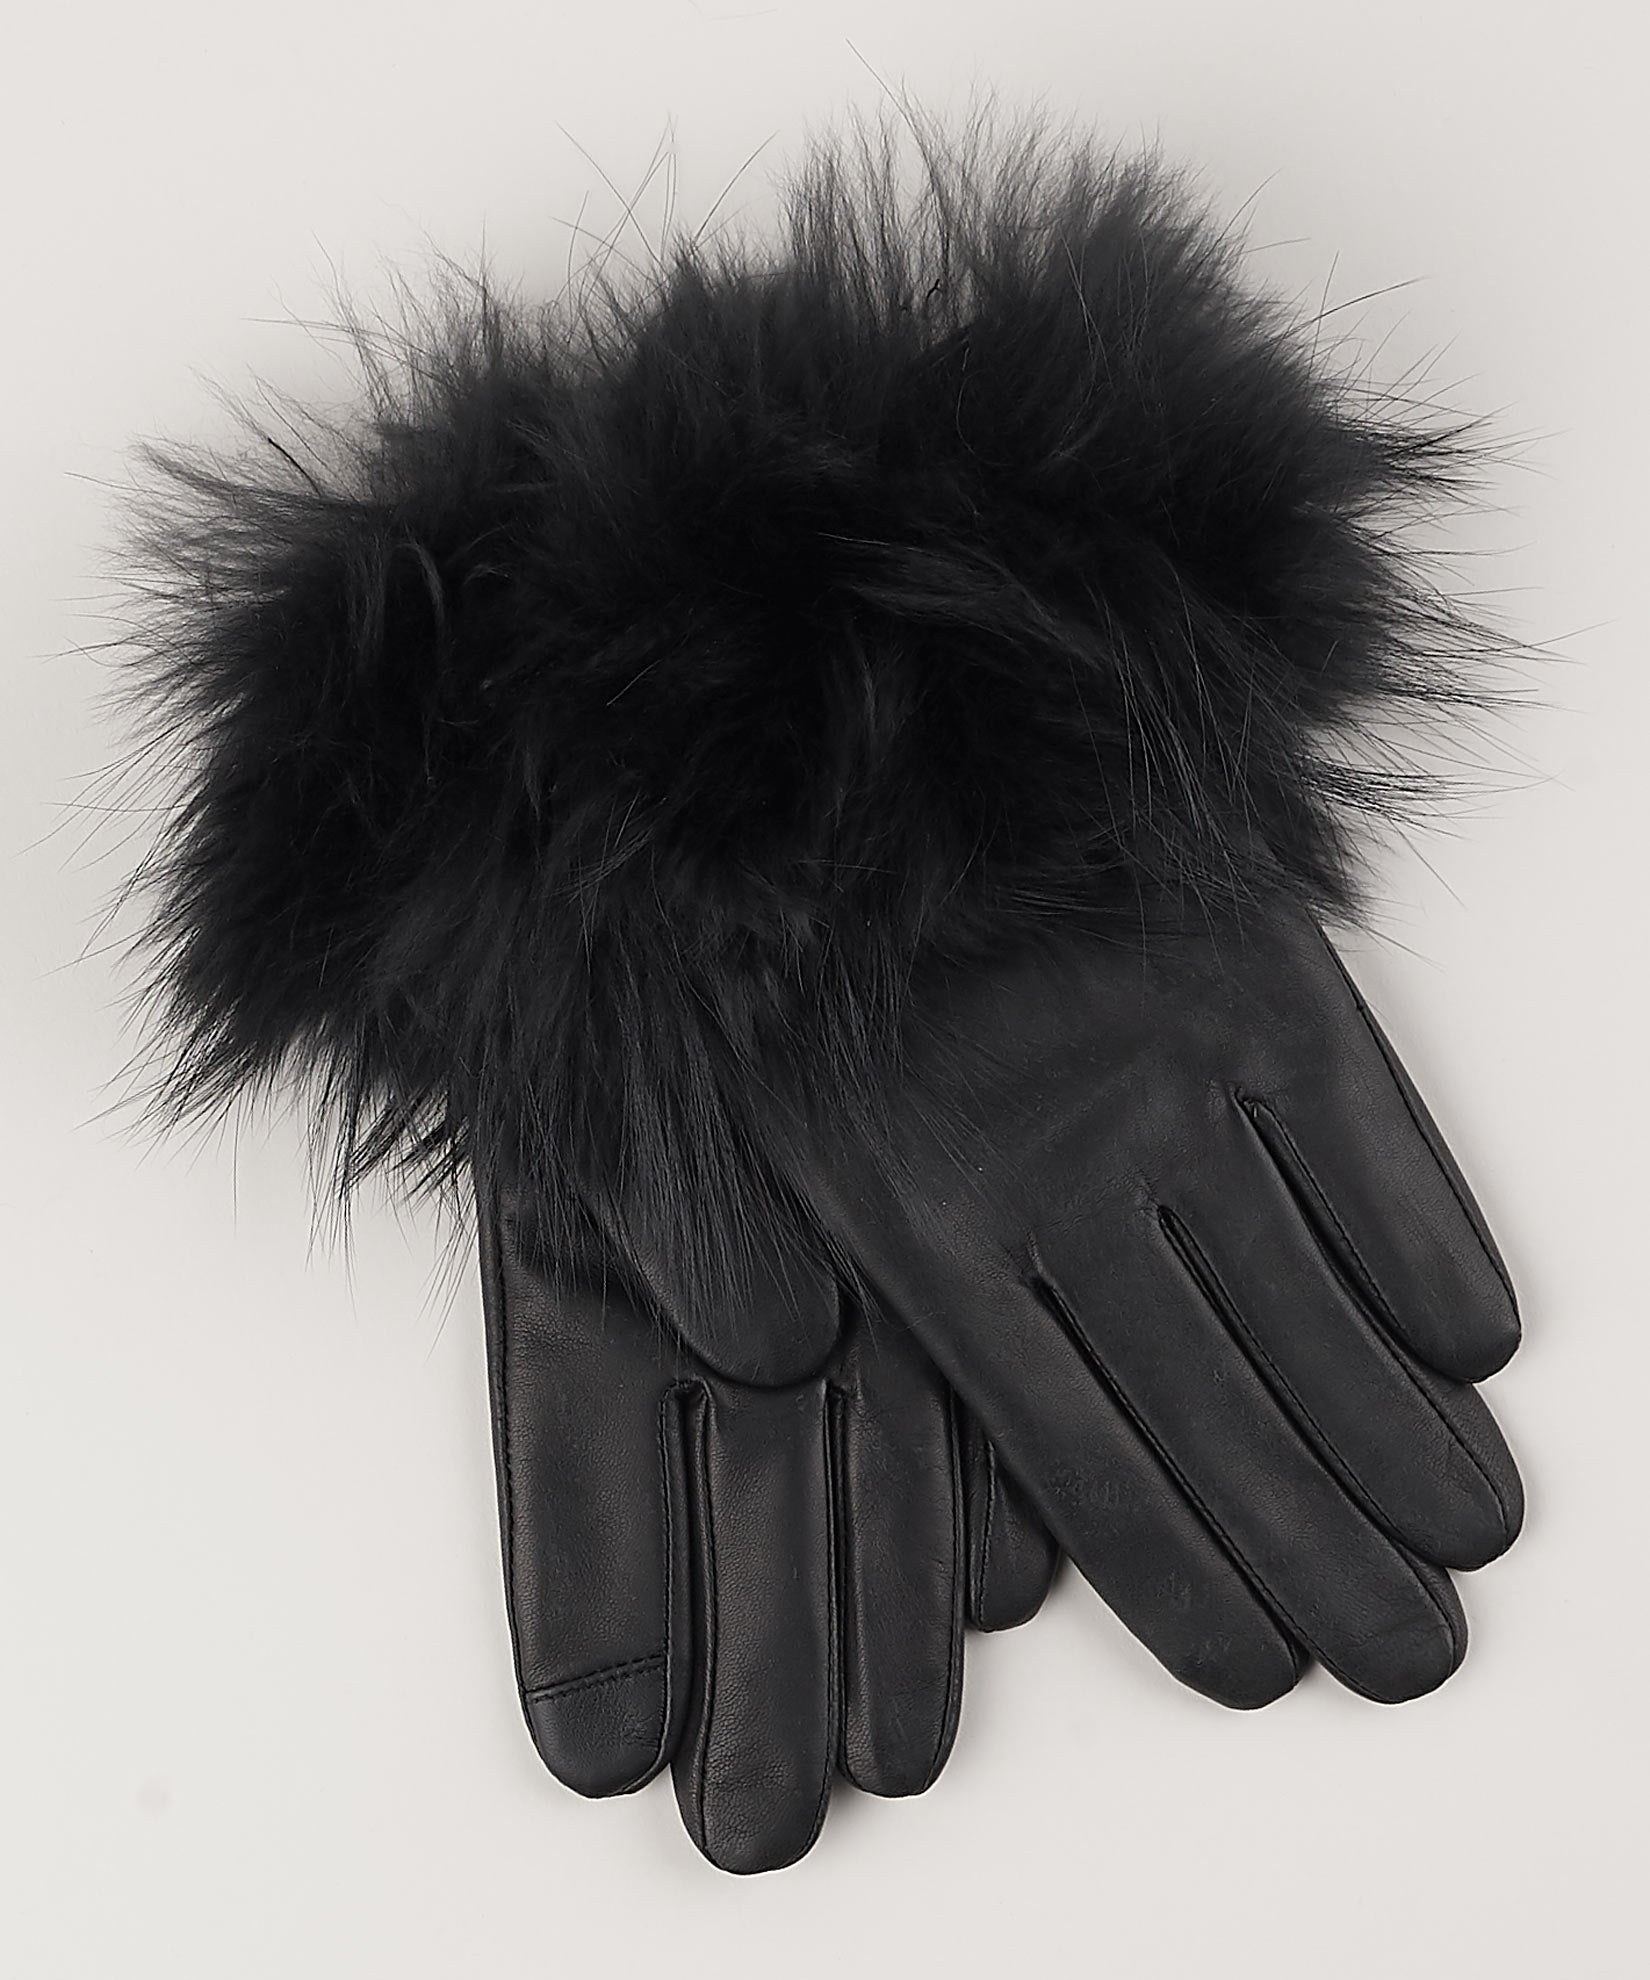 Black - Fur Cuff Glove